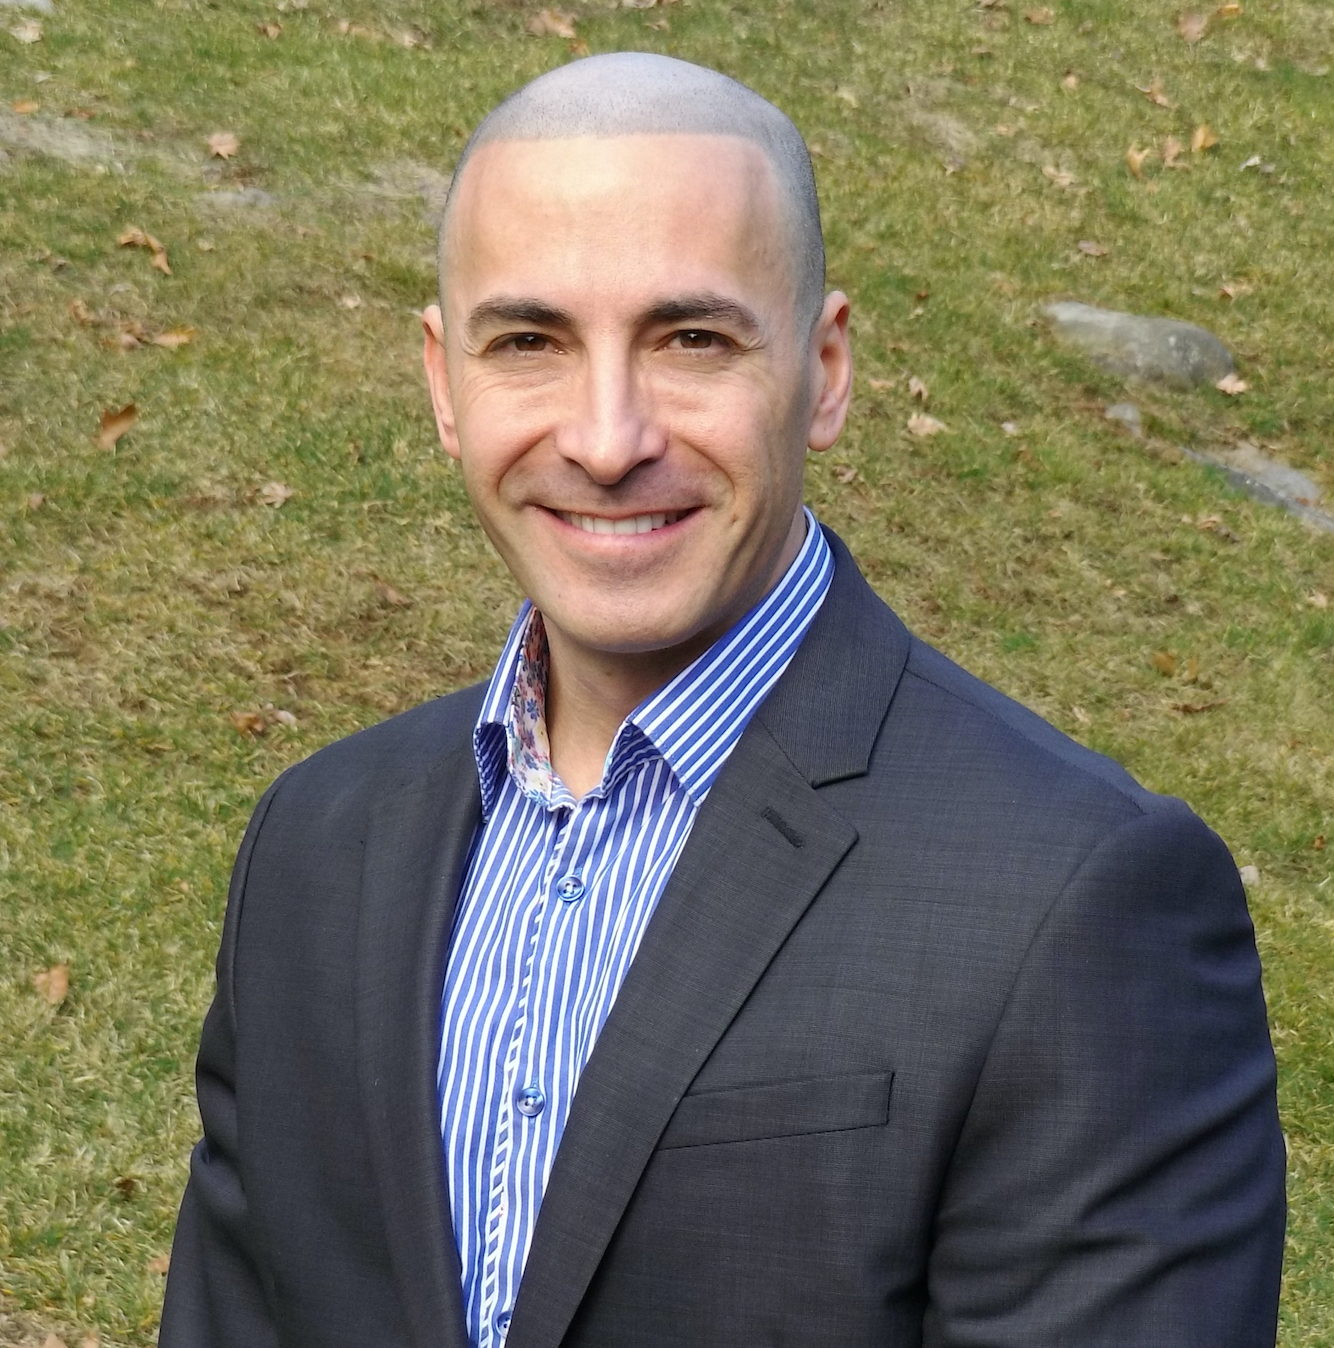 Dr. Michael Wald, DC, MD  , Doctor of Philosophy in Holistic Nutrition. Dr. Wald earned his MD degree and is not licensed to practice medicine.